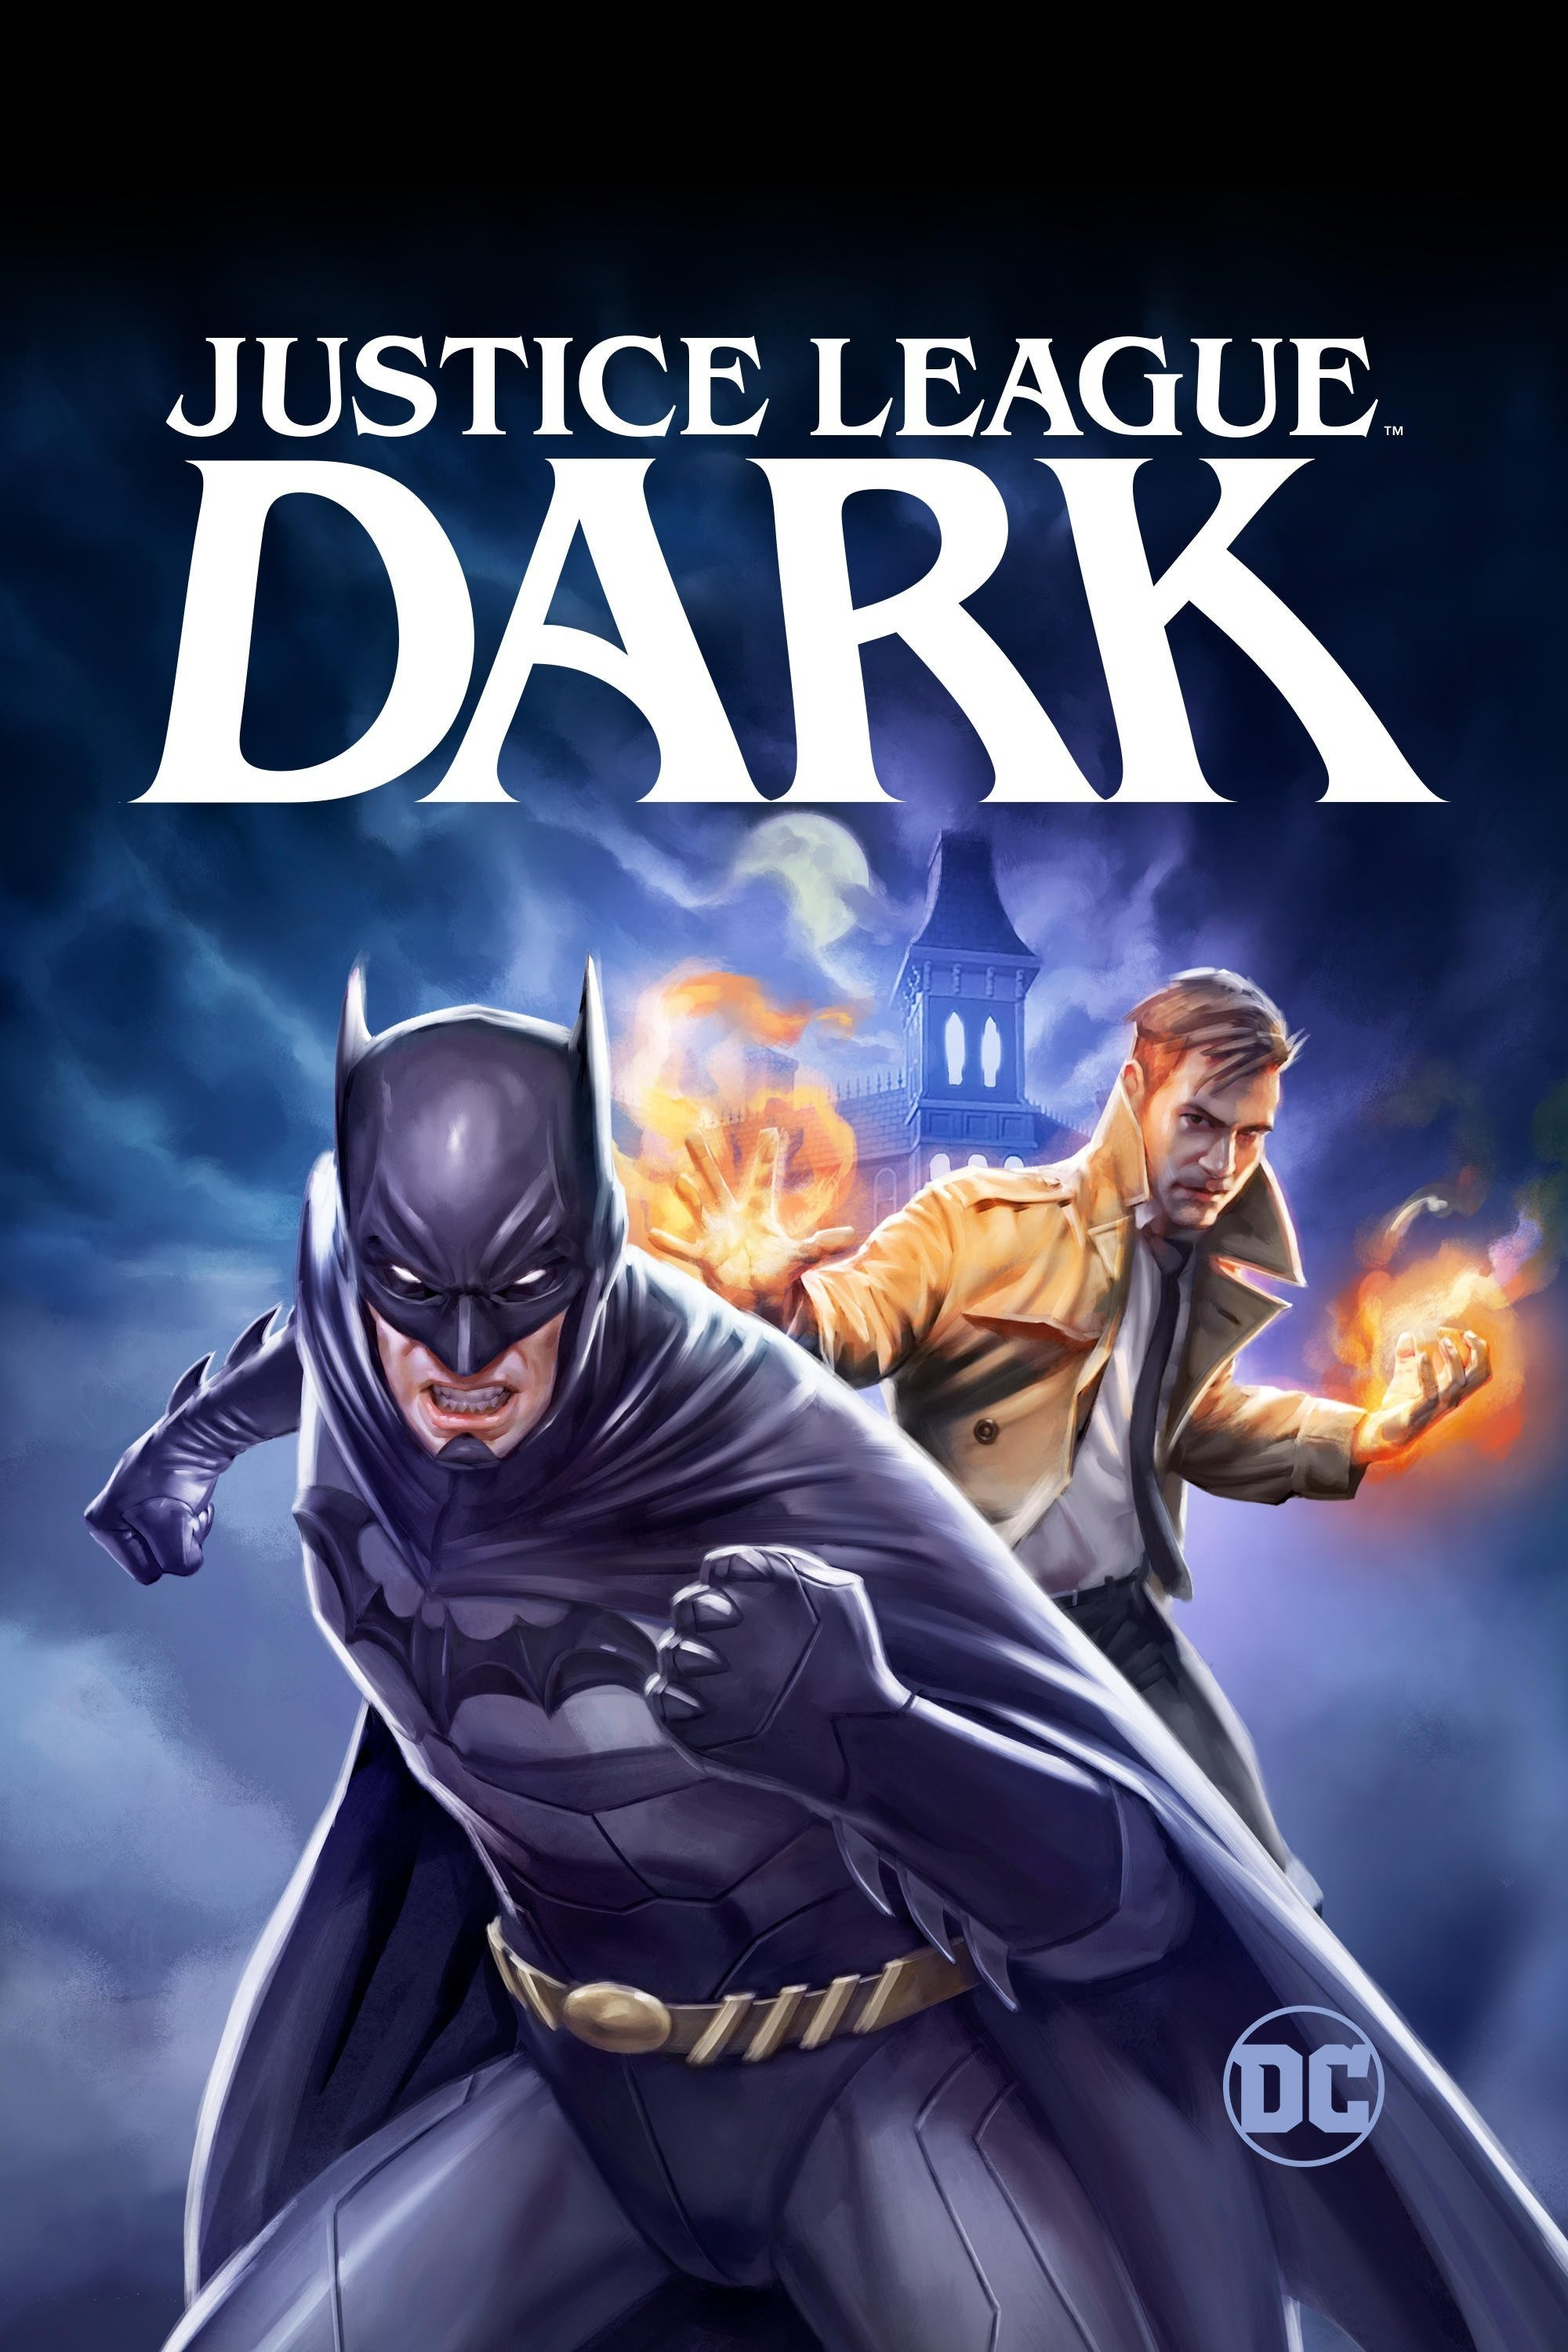 Download FIlm Justice League Dark 2017 Bluray Subtitle Indonesia MKV MP4 360p. 480p, 720p